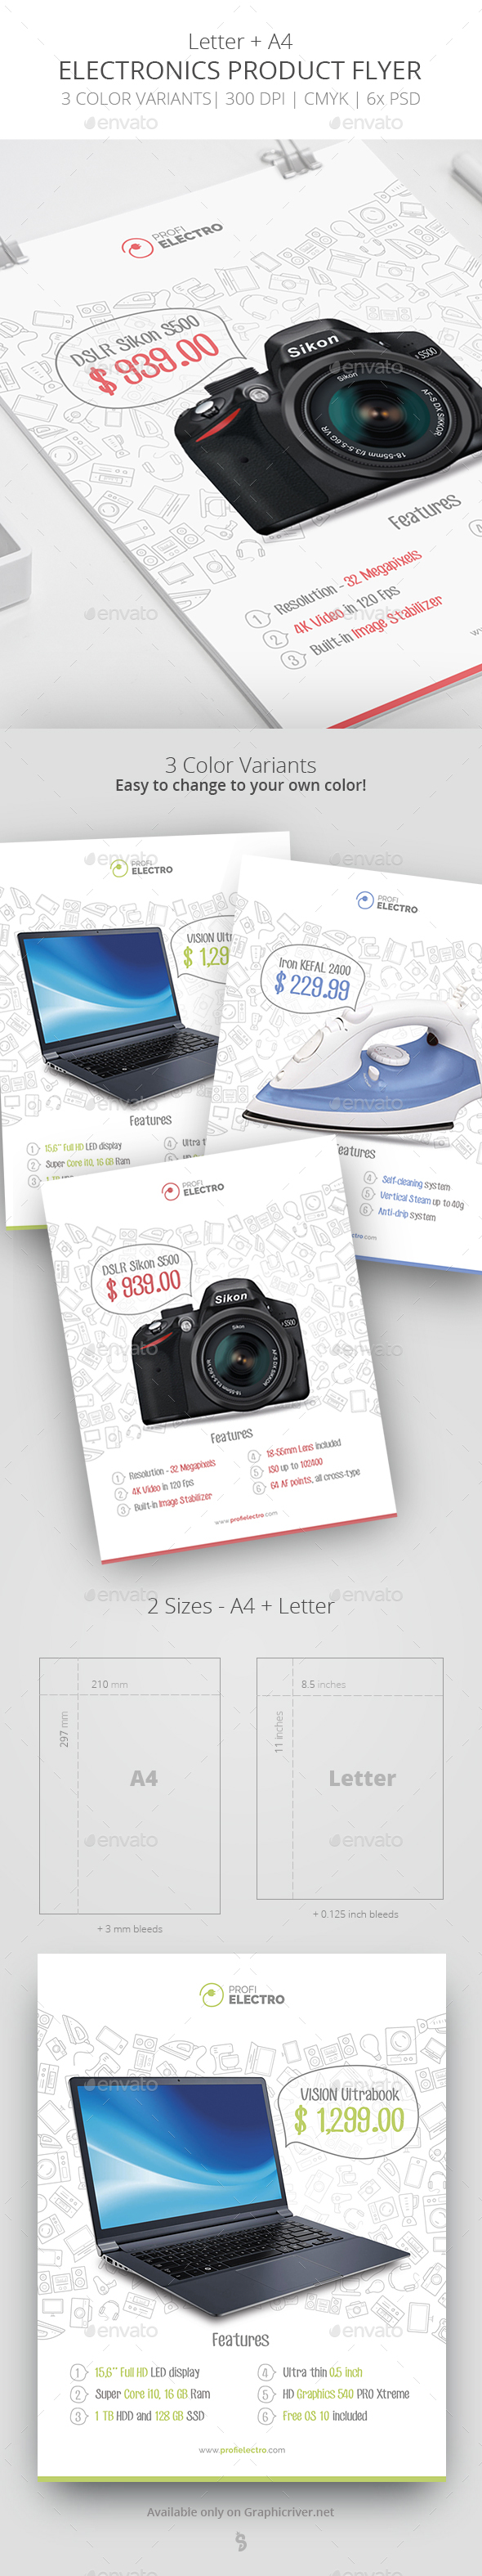 Product Flyer Template - Electronics - Commerce Flyers